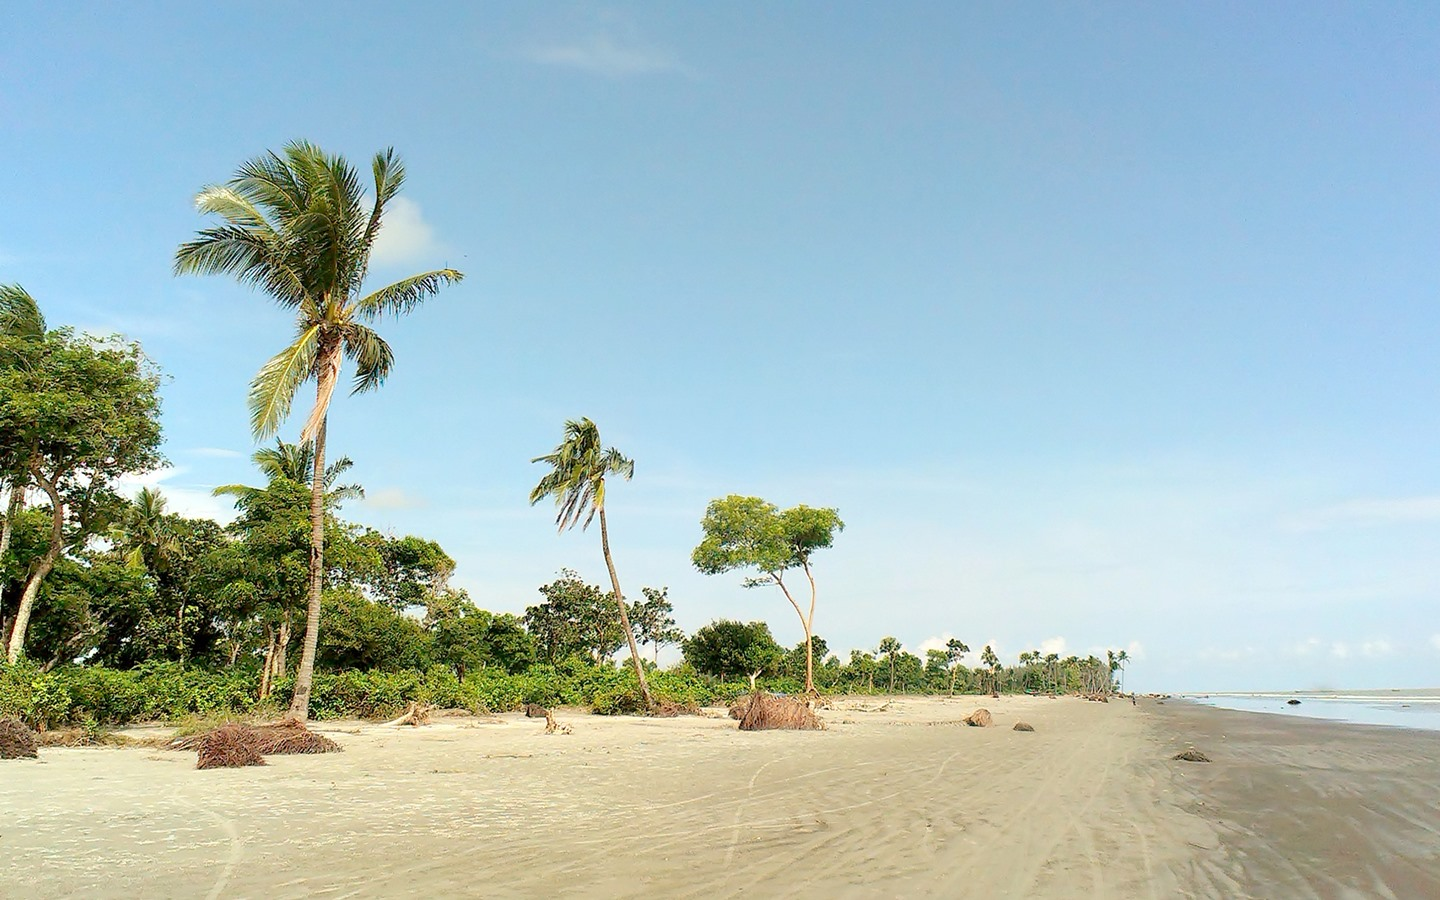 Kuakata is a one of the most underrated beautiful places in Bangladesh